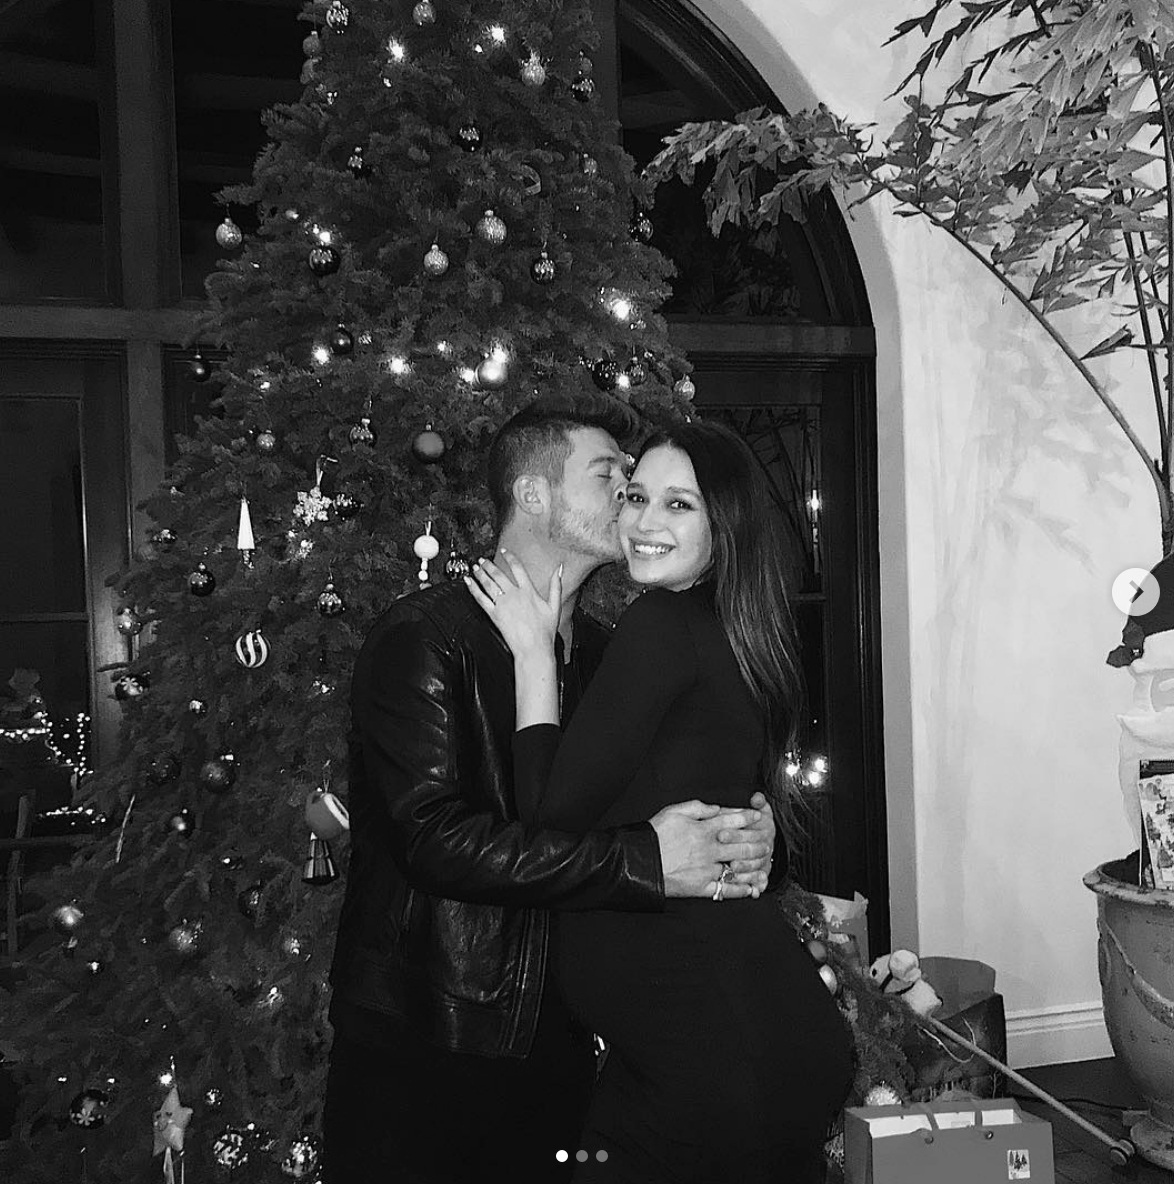 """Robin-Thicke-and-April-Love-Geary-engaged - The """"Blurred Lines"""" crooner proposed to Geary , who is pregnant with the couple's second child, over the holidays. The model posted photos and a video from the pair's special moment to Instagram on December 25."""